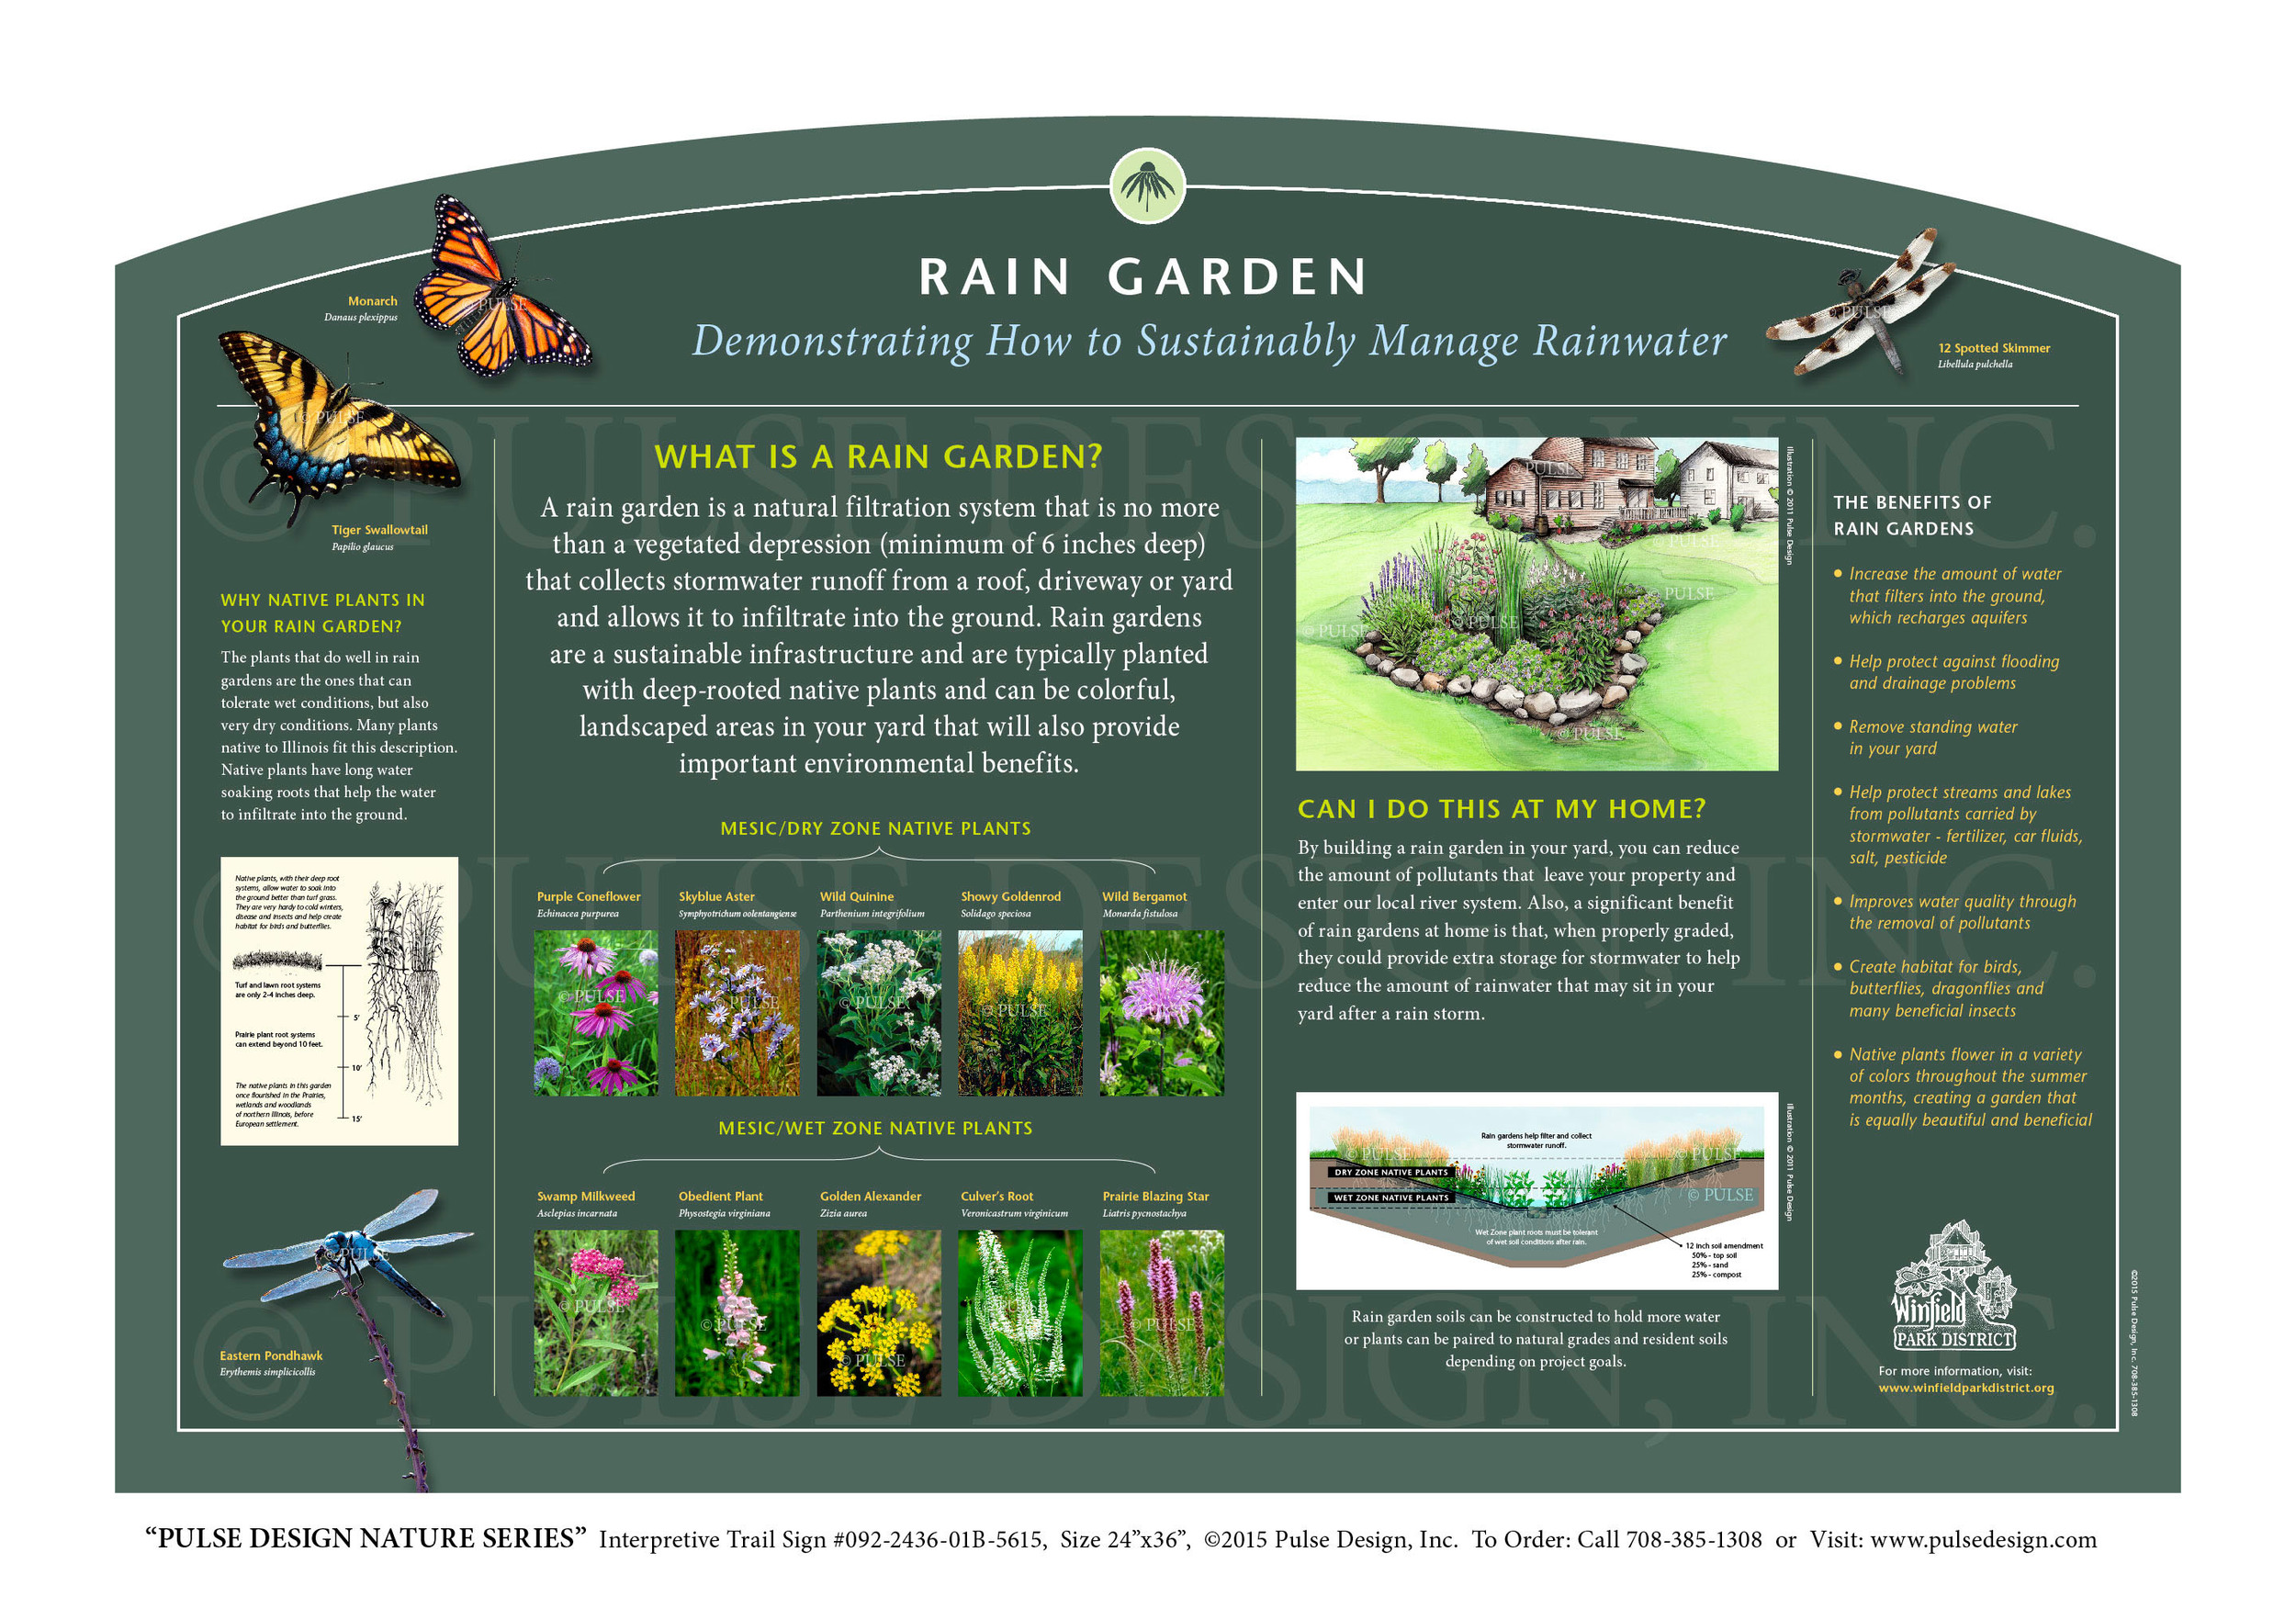 "Pulse Design provides Outdoor Interpretive Nature Trail Signs, Environmental Education Exhibits, Graphic Display Panels, Wayfinding Signage and Monuments, focused on Wildlife and Habitat throughout the United States. The  PULSE DESIGN NATURE SERIES  is a beautiful, ""Ready-to-Order"" and ""Customizable"" series of interpretive trail signs that cover many common nature subjects. See more signs from our  URBAN HABITATS & ENVIRONMENTAL SIGNS SERIES ."